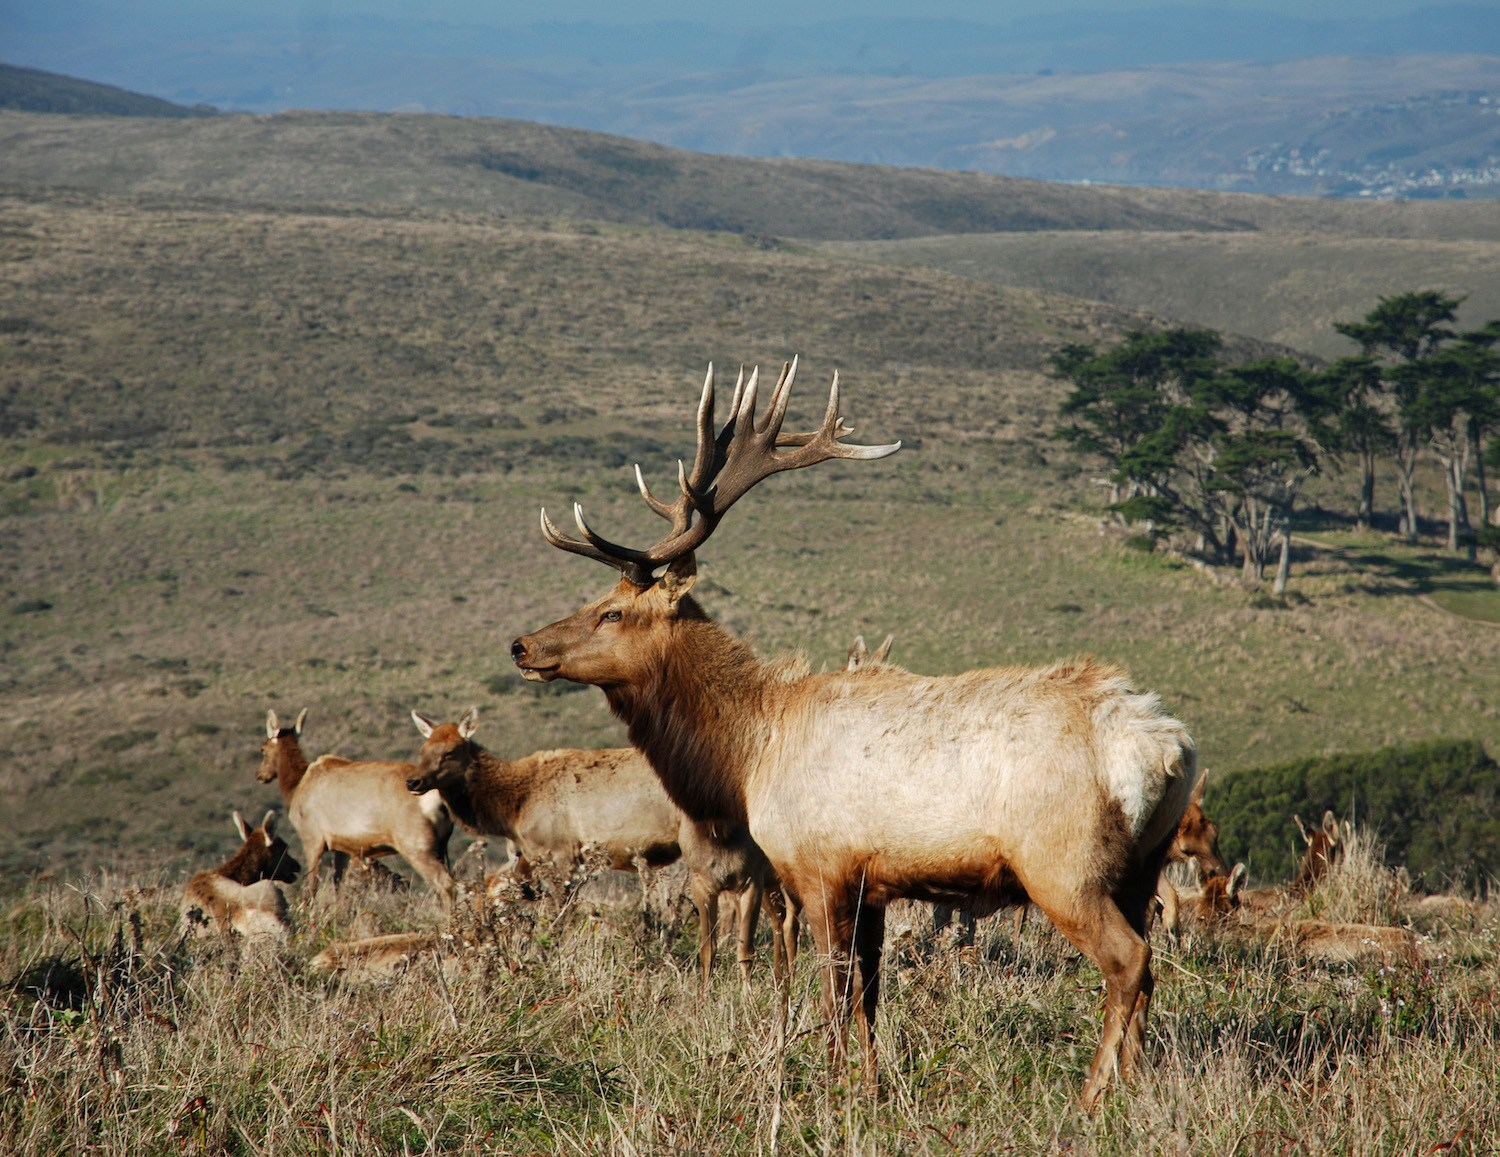 An elk bull at Point Reyes in California. May 2021